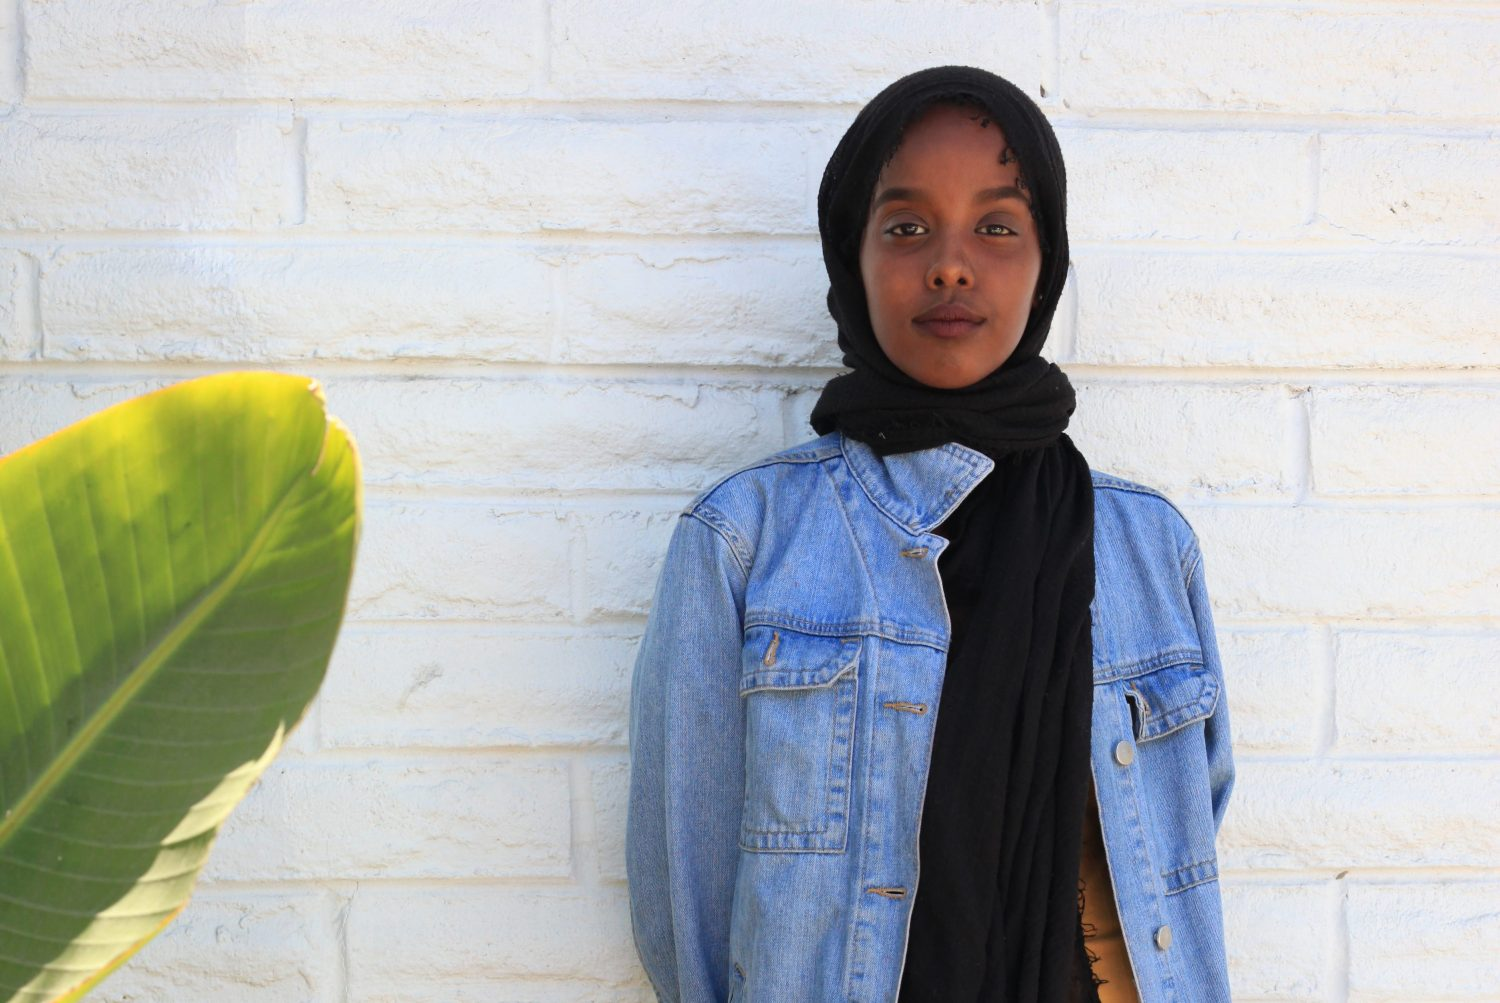 Immigrant Youth Fashion: Fitting In To Stand Out